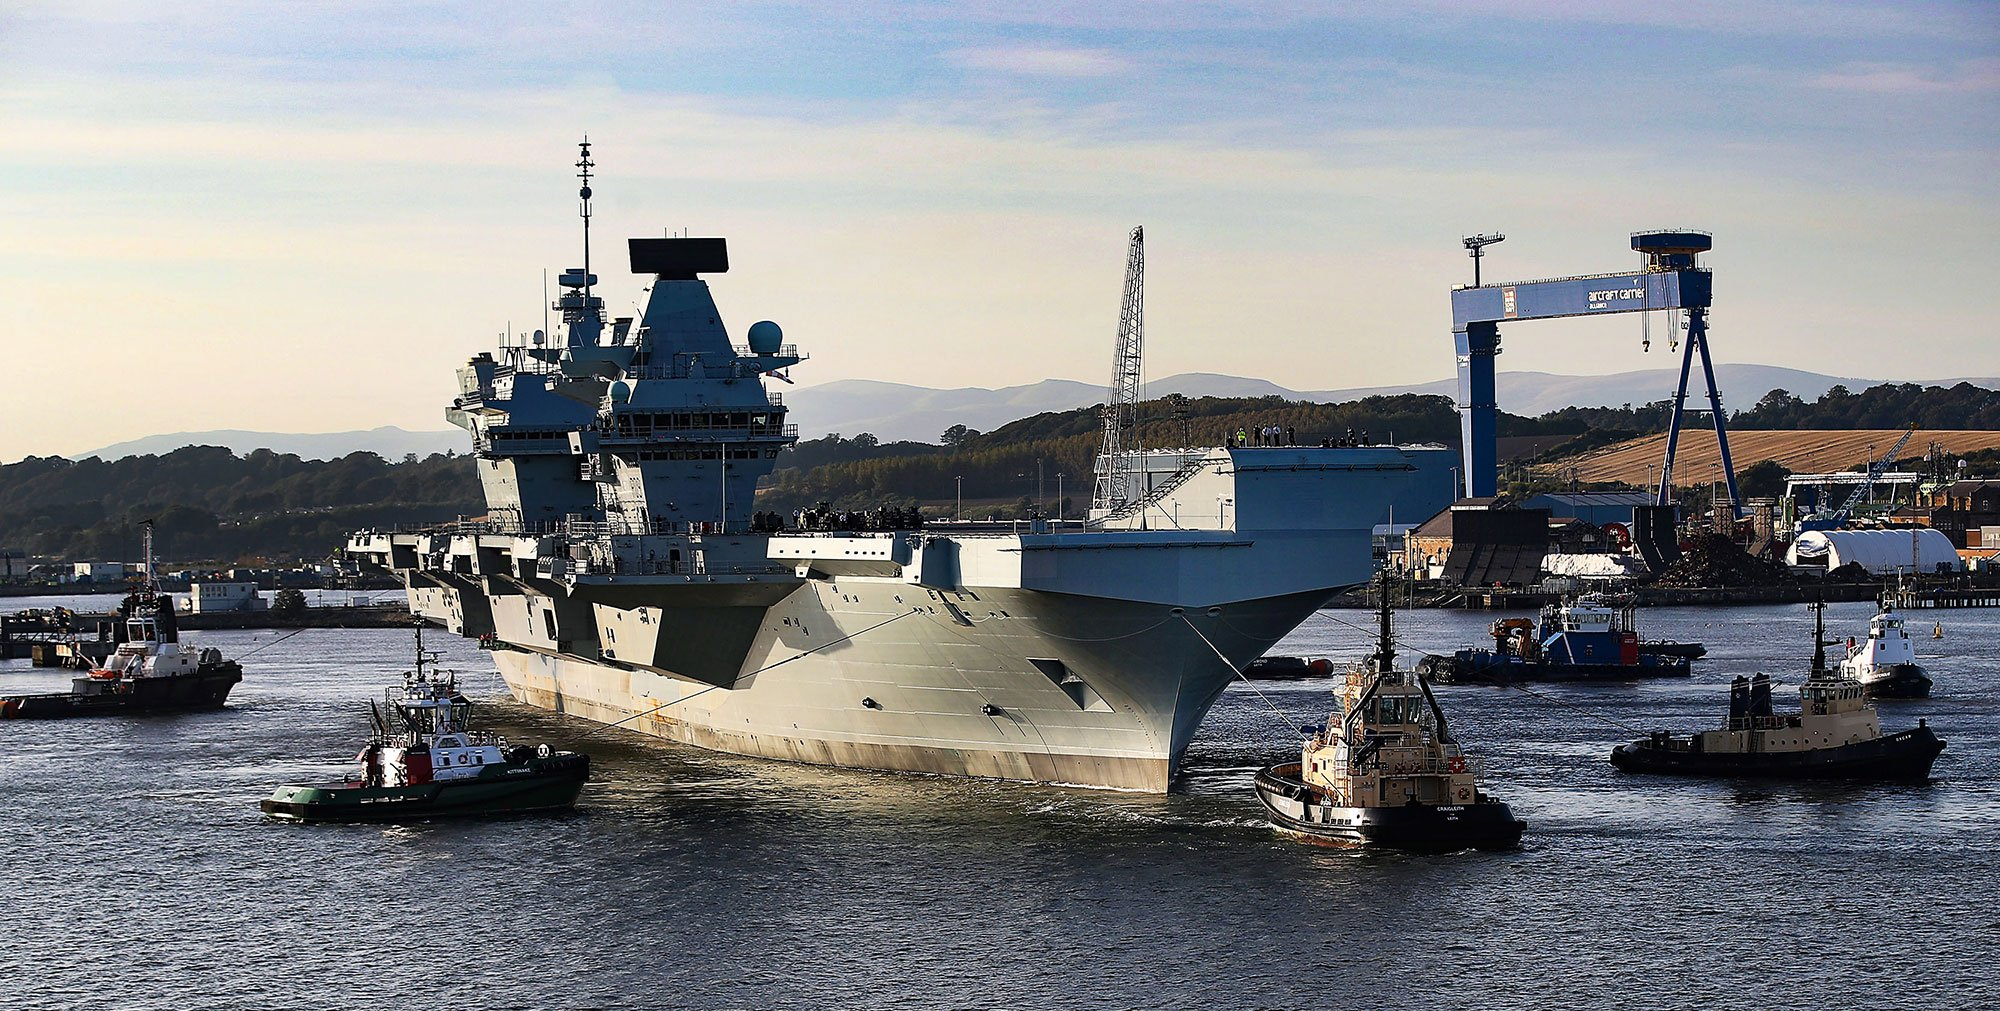 HMS Prince of Wales and the Forth Warrior